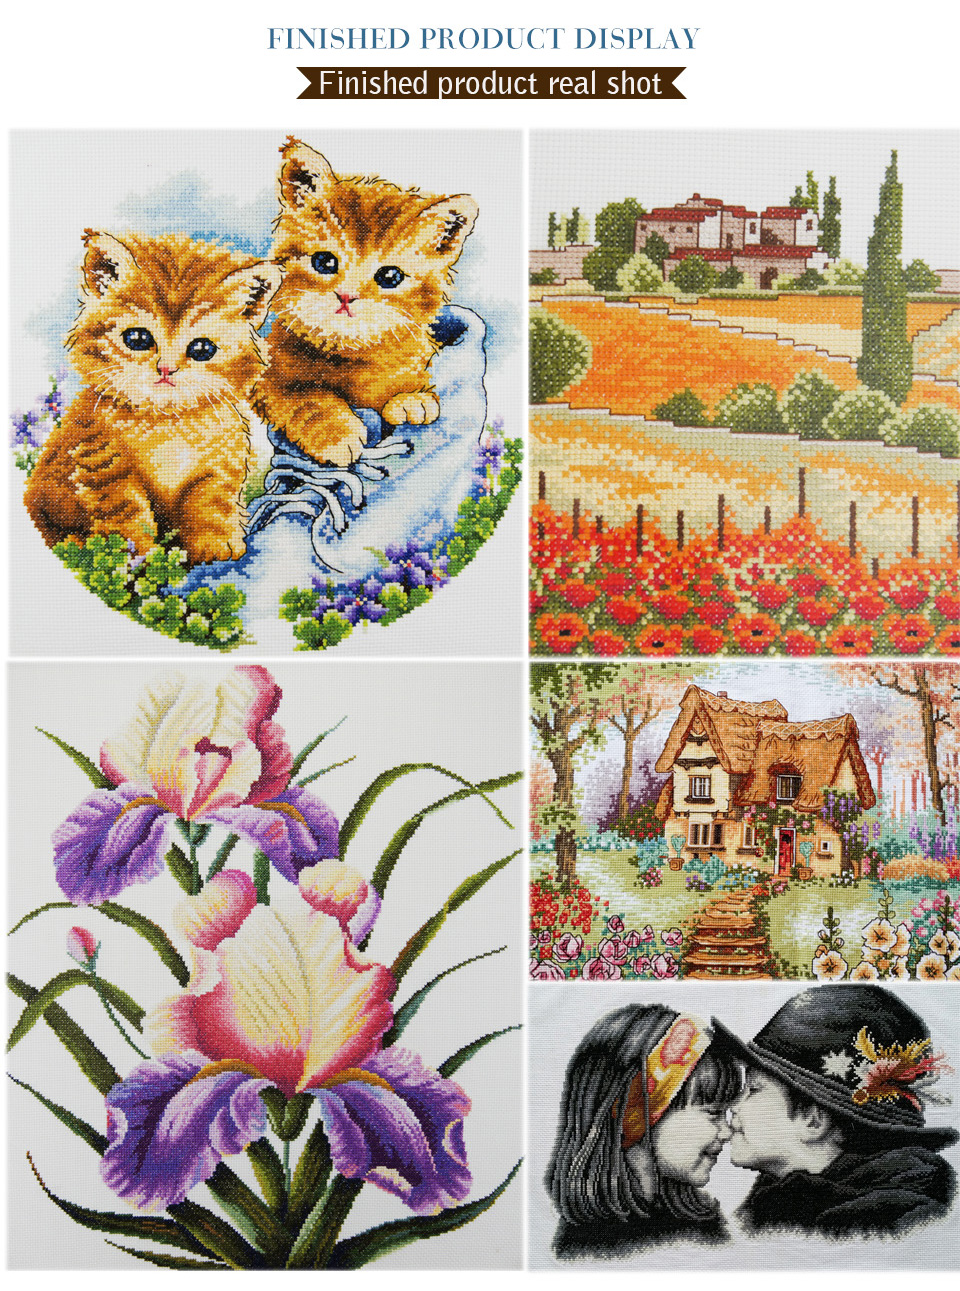 09 Sewing-Decro cross stitch kits embroidery needlework sets cross stitch patterns cross stitch kits embroidery needlework sets dmc cross stitch kits animals cross stitch kits embroidery needlework sets print cr